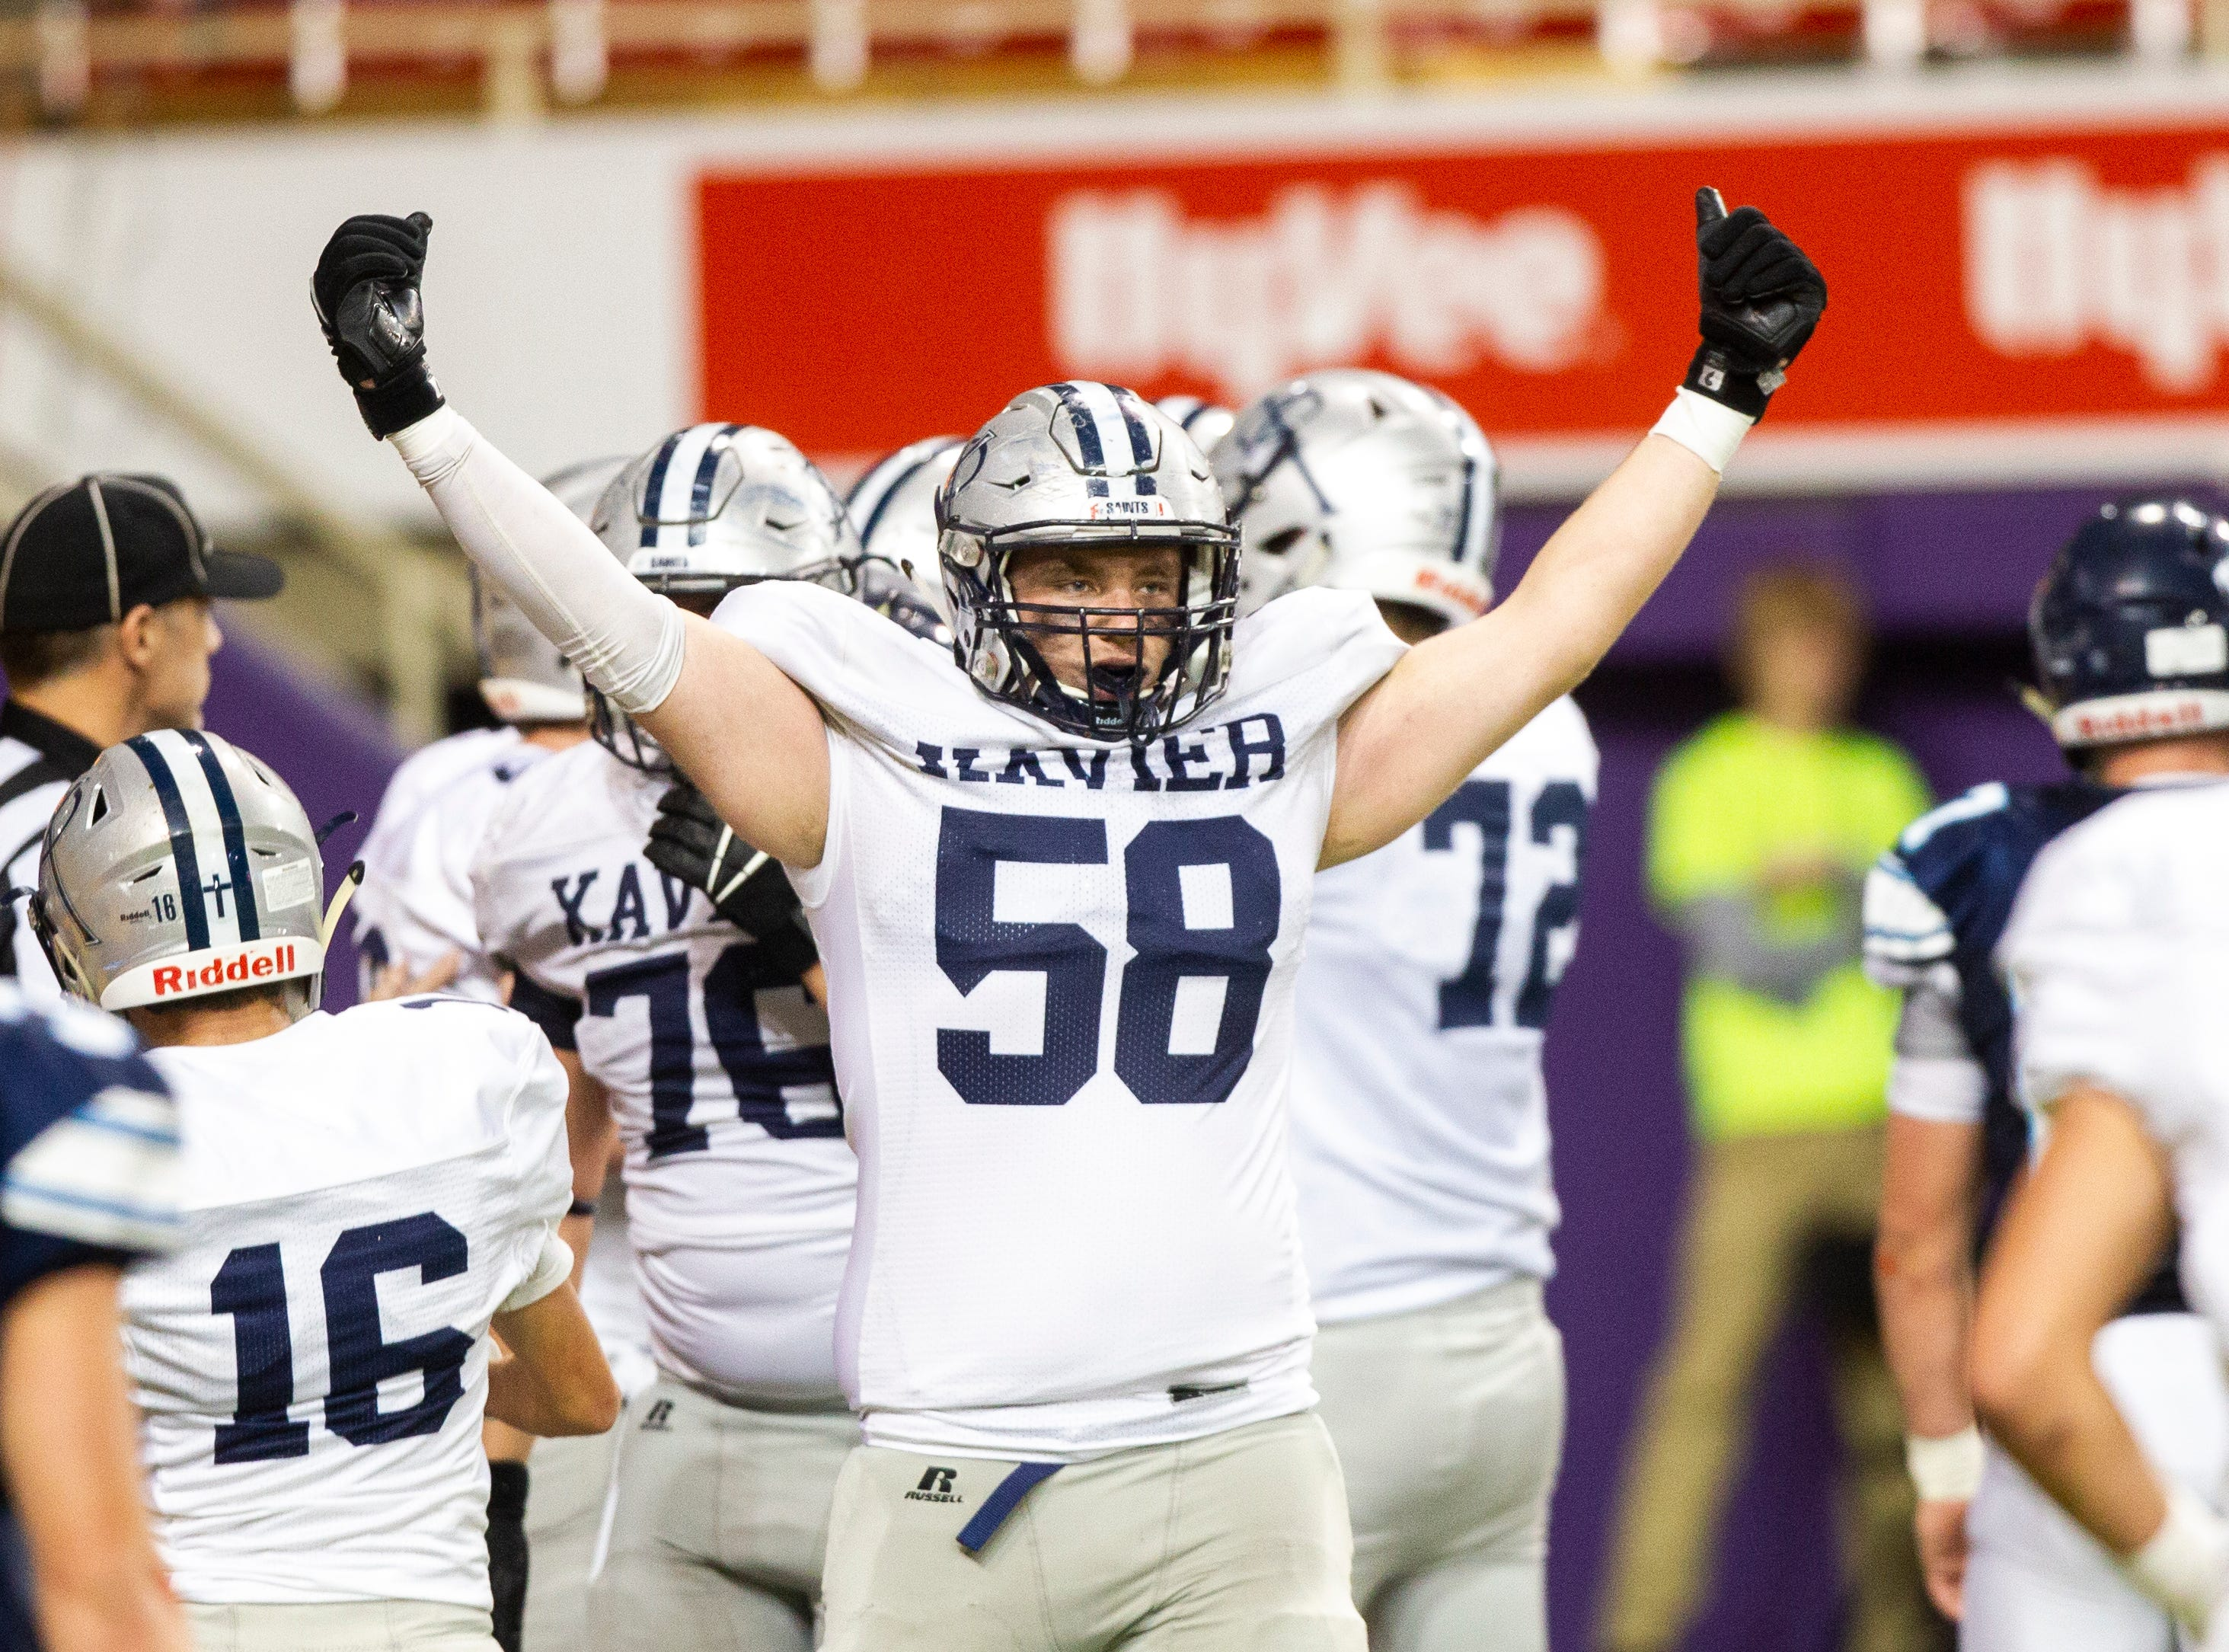 Cedar Rapids Xavier's Derrick Voss (58) celebrates after a touchdown during a Class 3A semi finals on Thursday, Nov. 8, 2018, at the UNI-Dome in Cedar Falls.